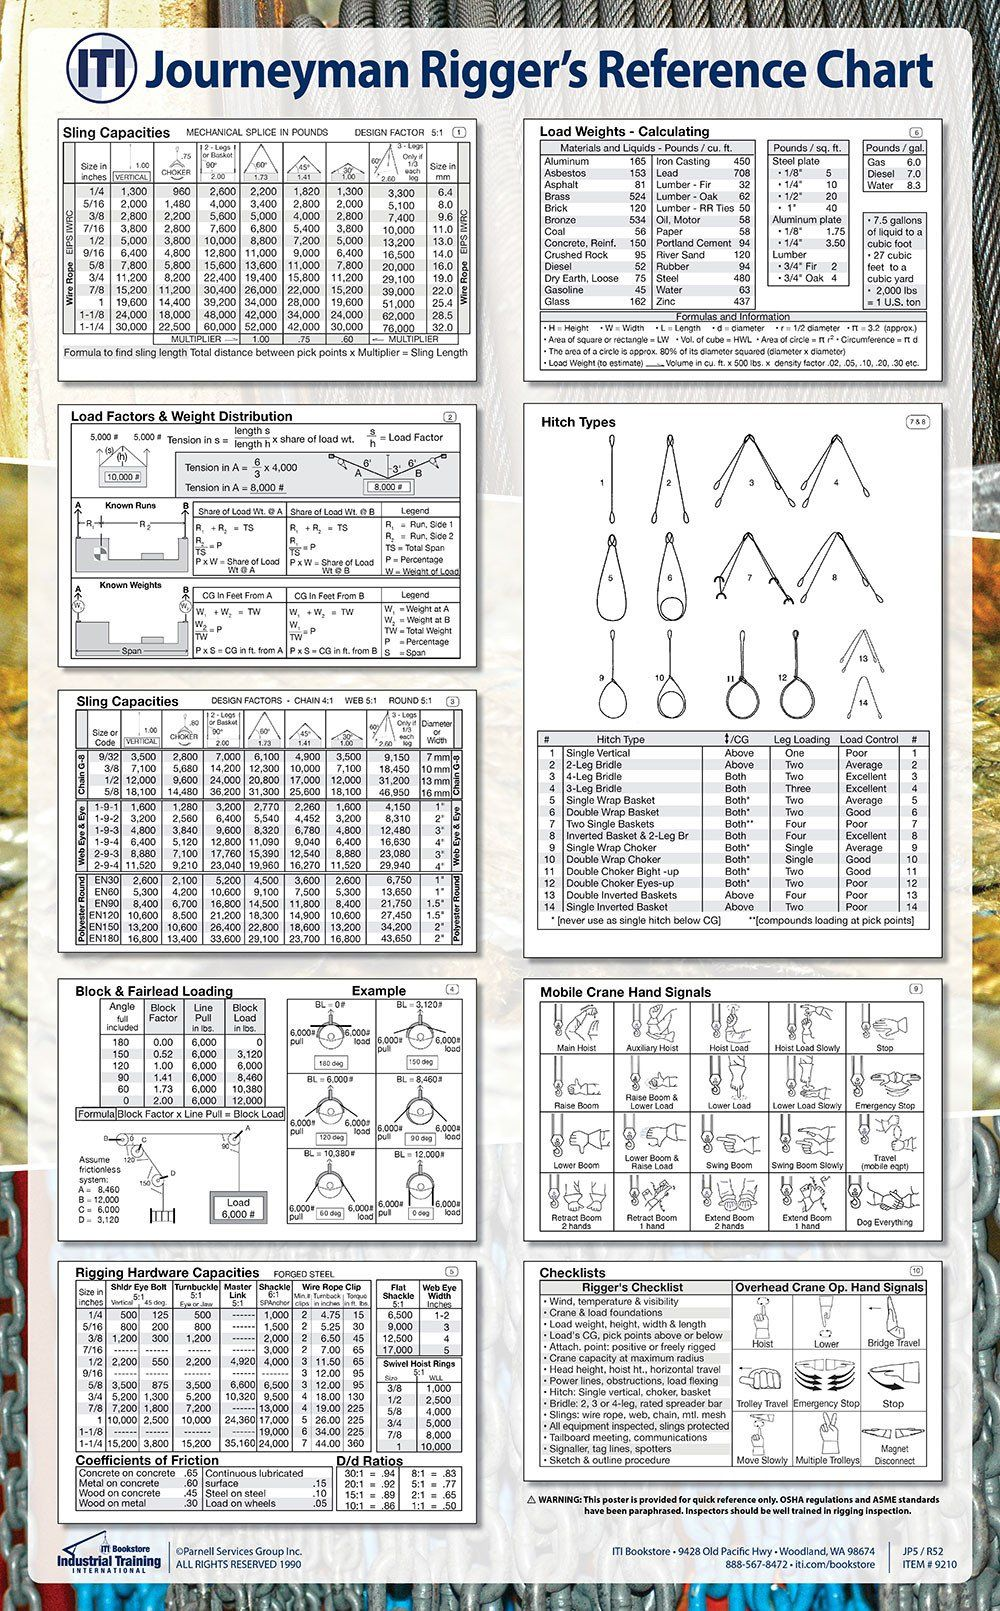 Journeyman Rigger Reference Chart (Poster) (Item 9210